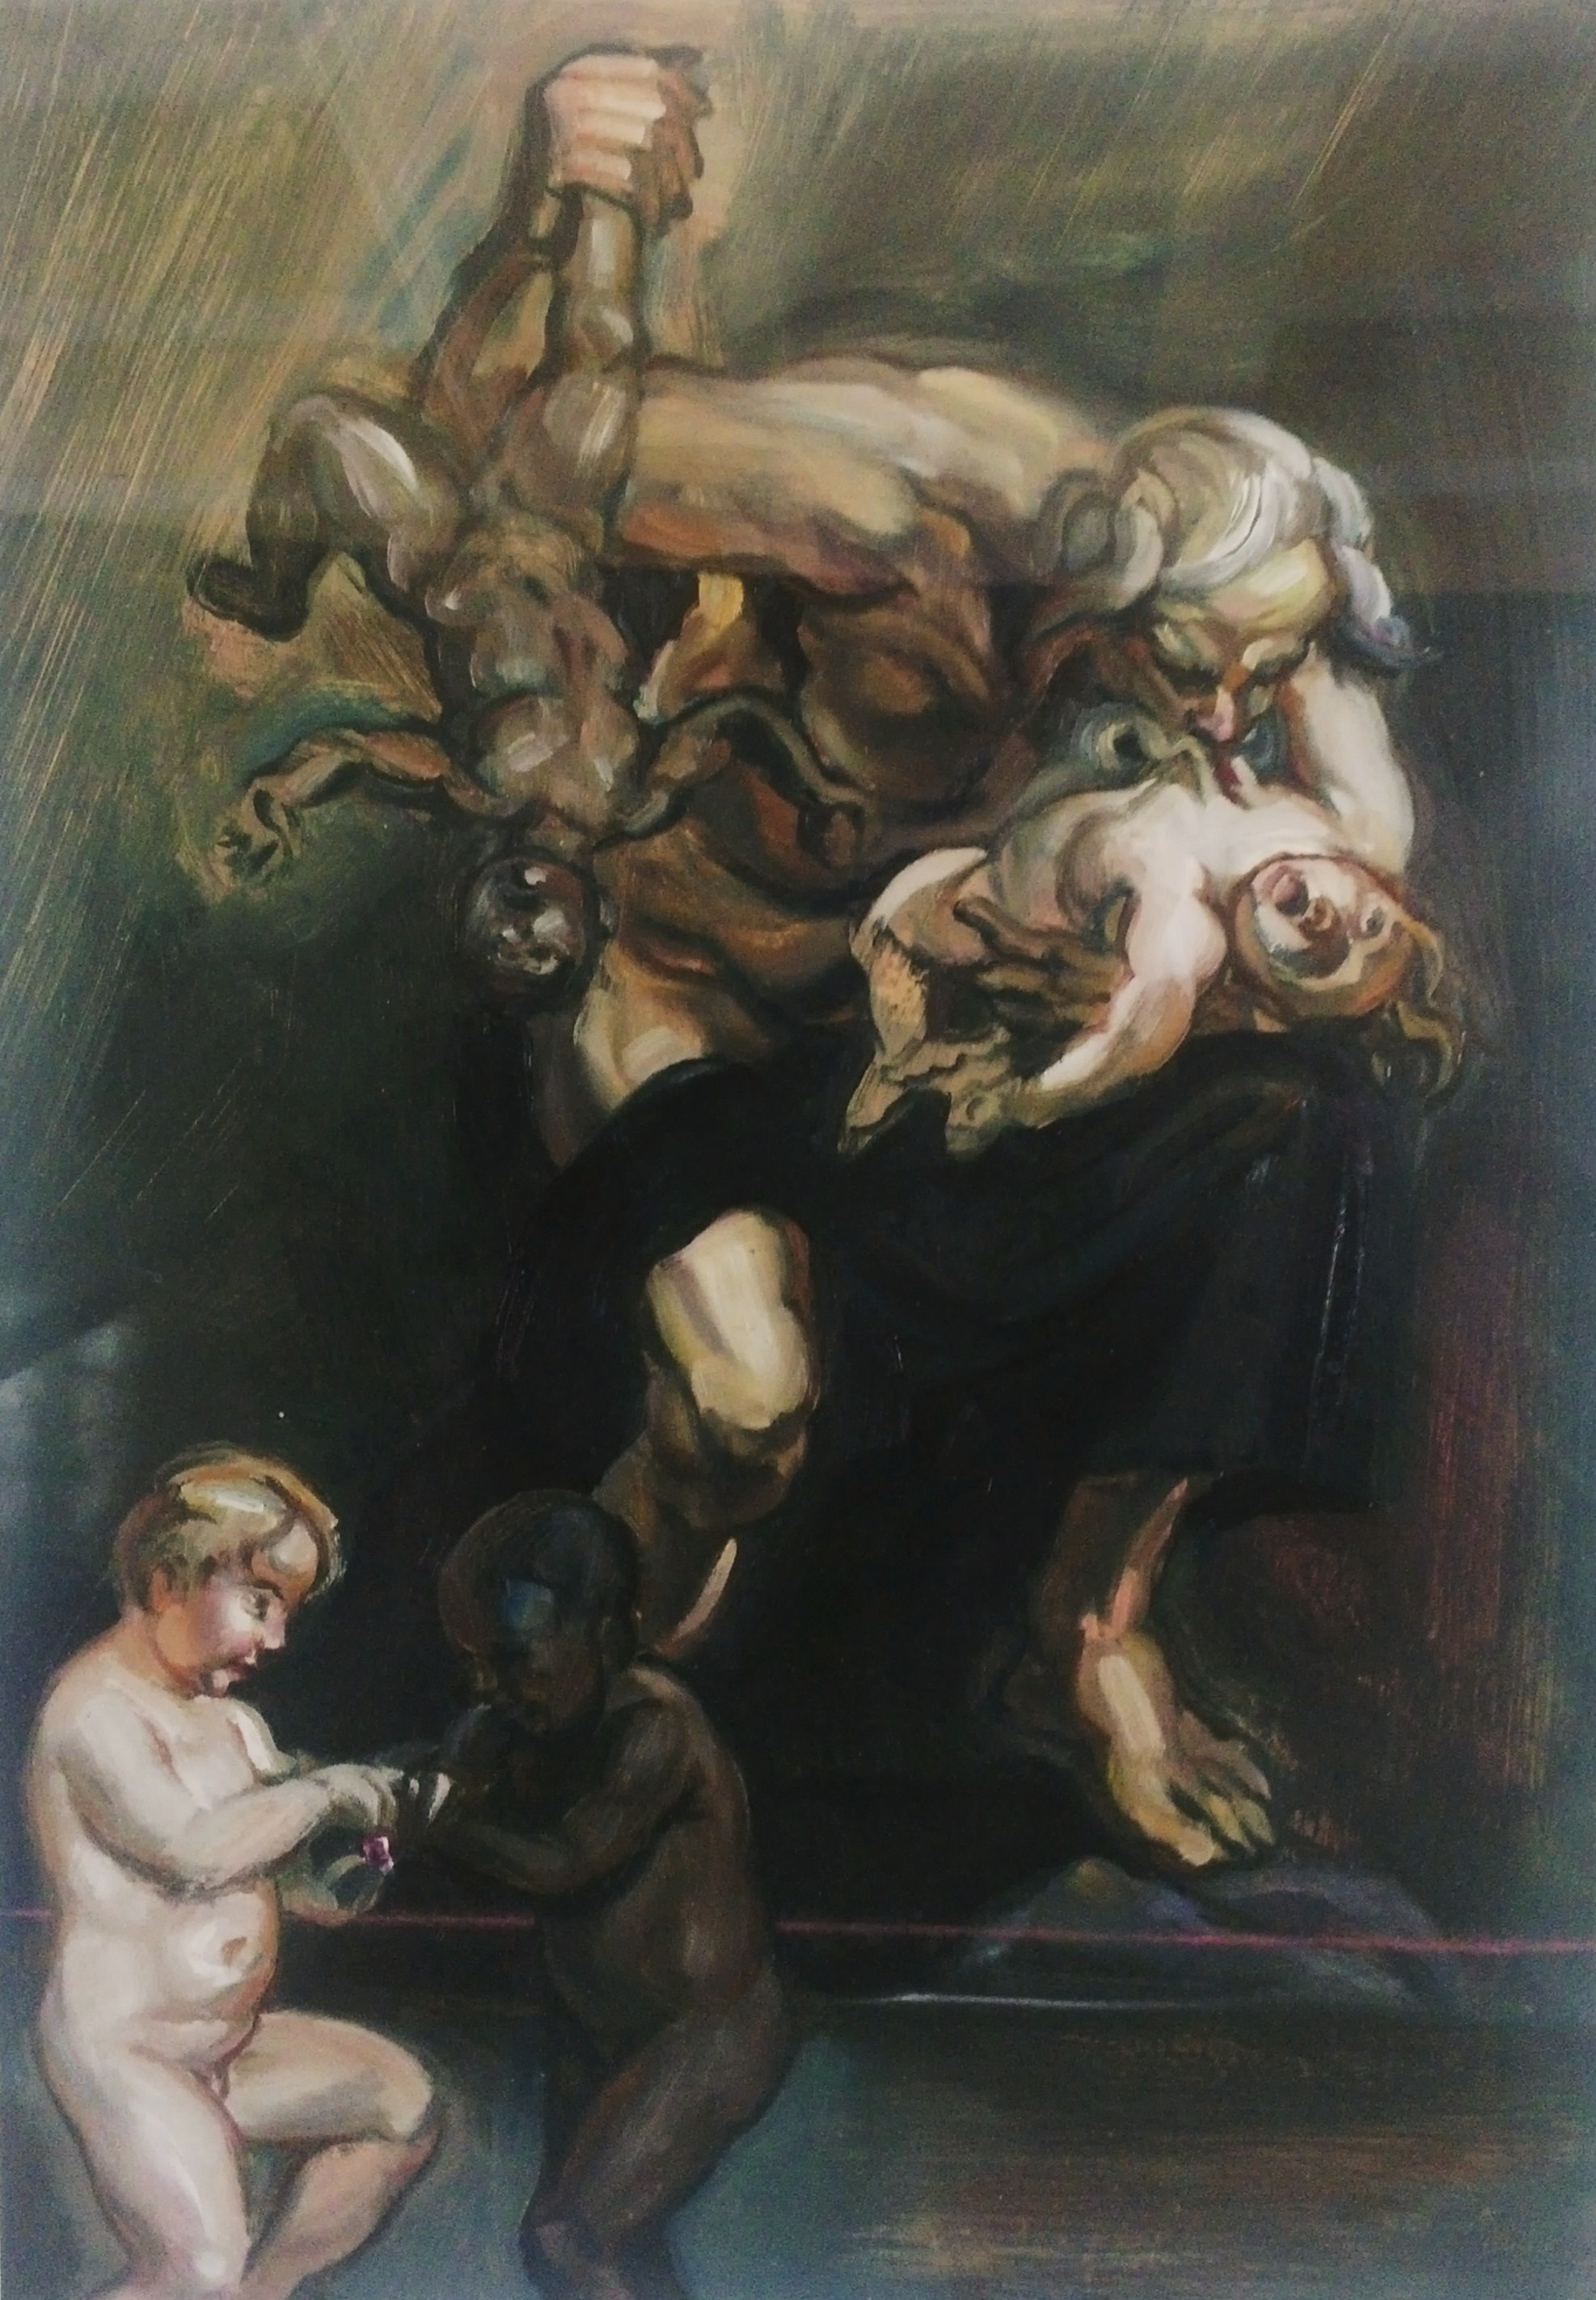 Saturn Devouring His Own Children